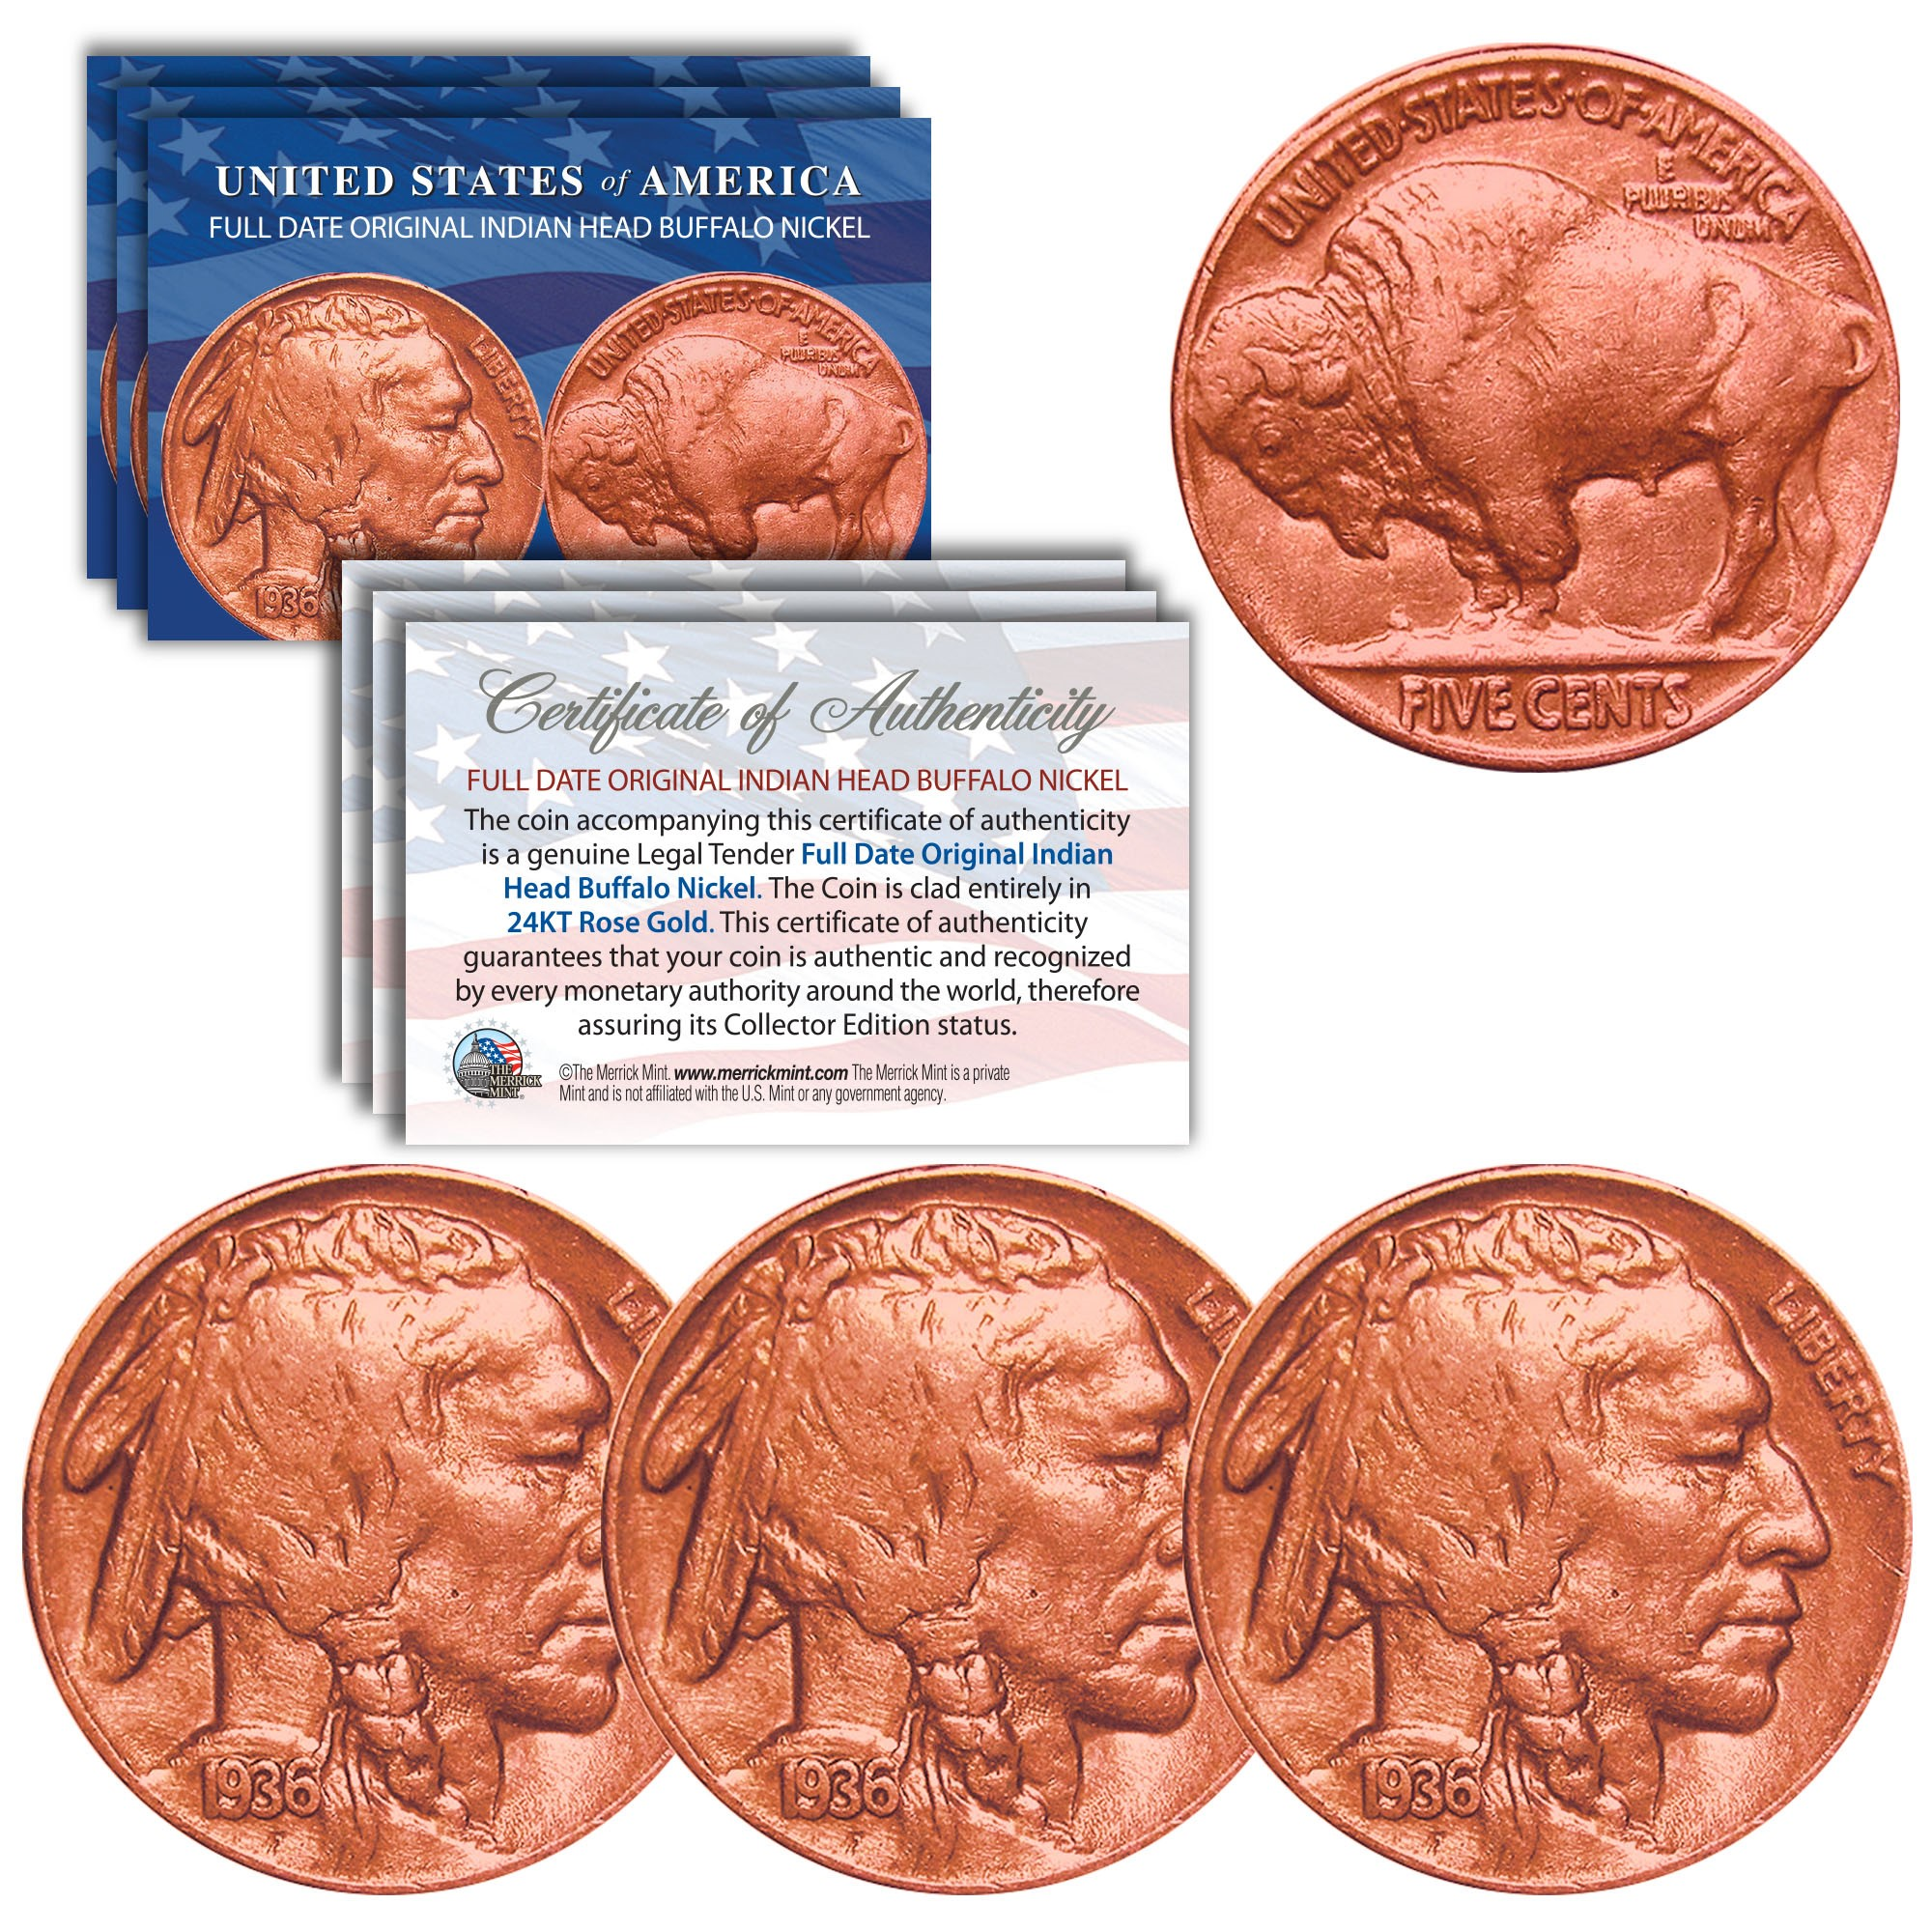 QTY of 3 Genuine ROSE GOLD plated Full Date BUFFALO INDIAN NICKELS US Coins